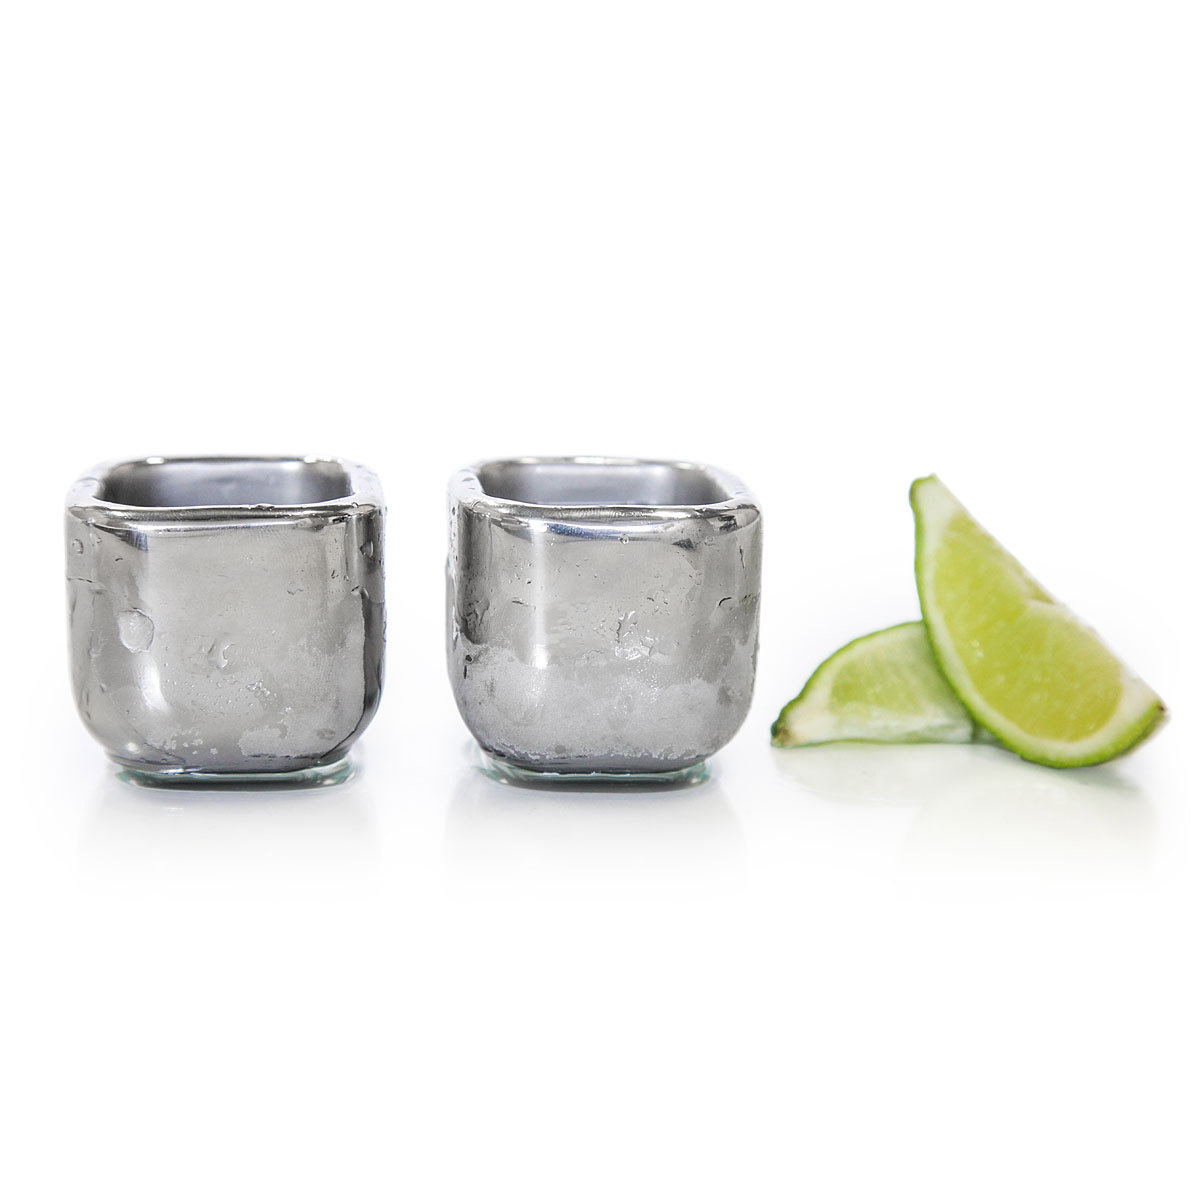 Sparq Cubed - Freezable Stainless Steel Shot Glasses - The Green Head